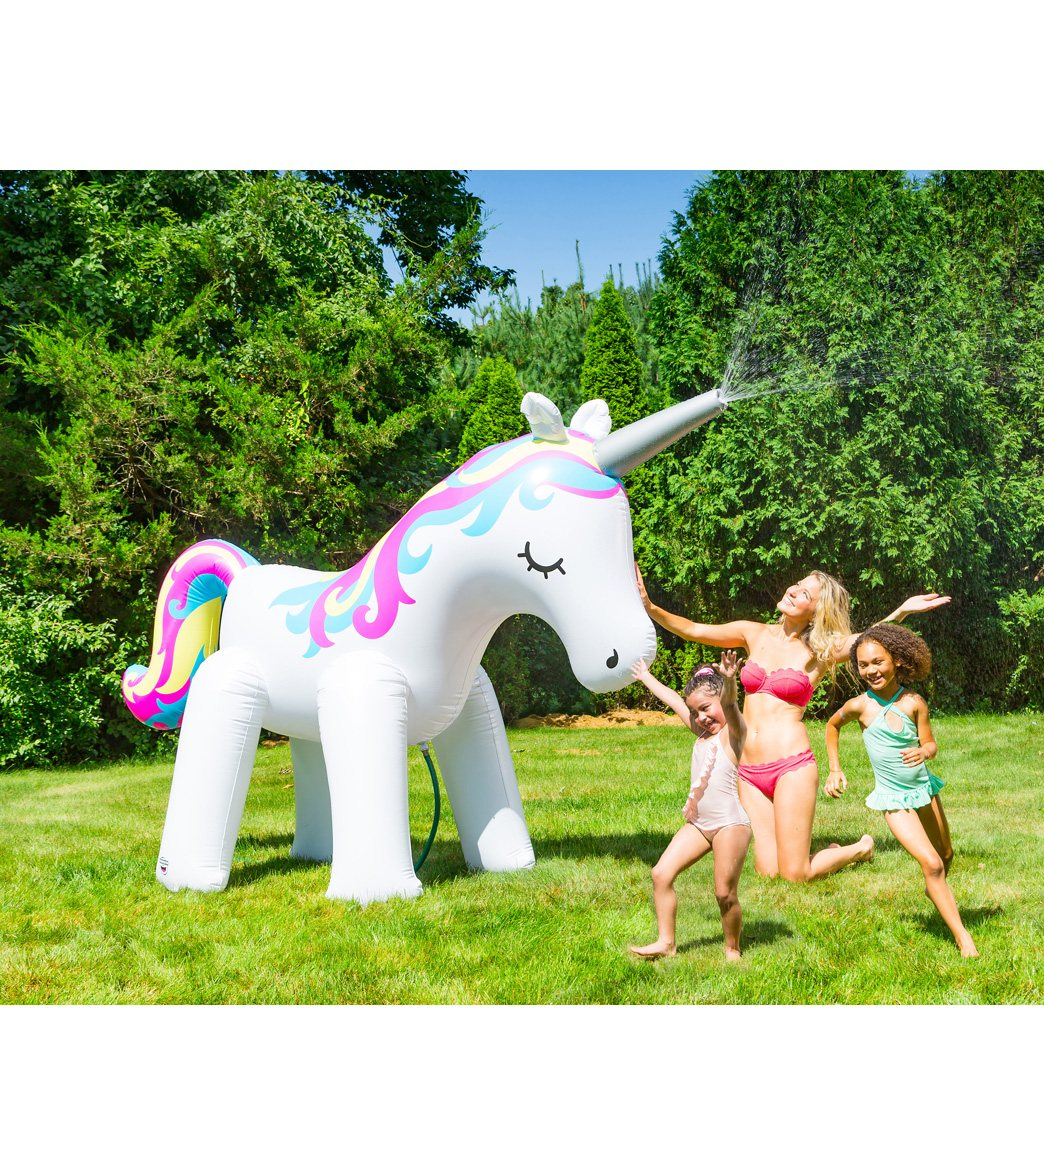 NEW SunnyLife INFLATABLE SPRINKLER UNICORN pool beach party game fun WATER WET